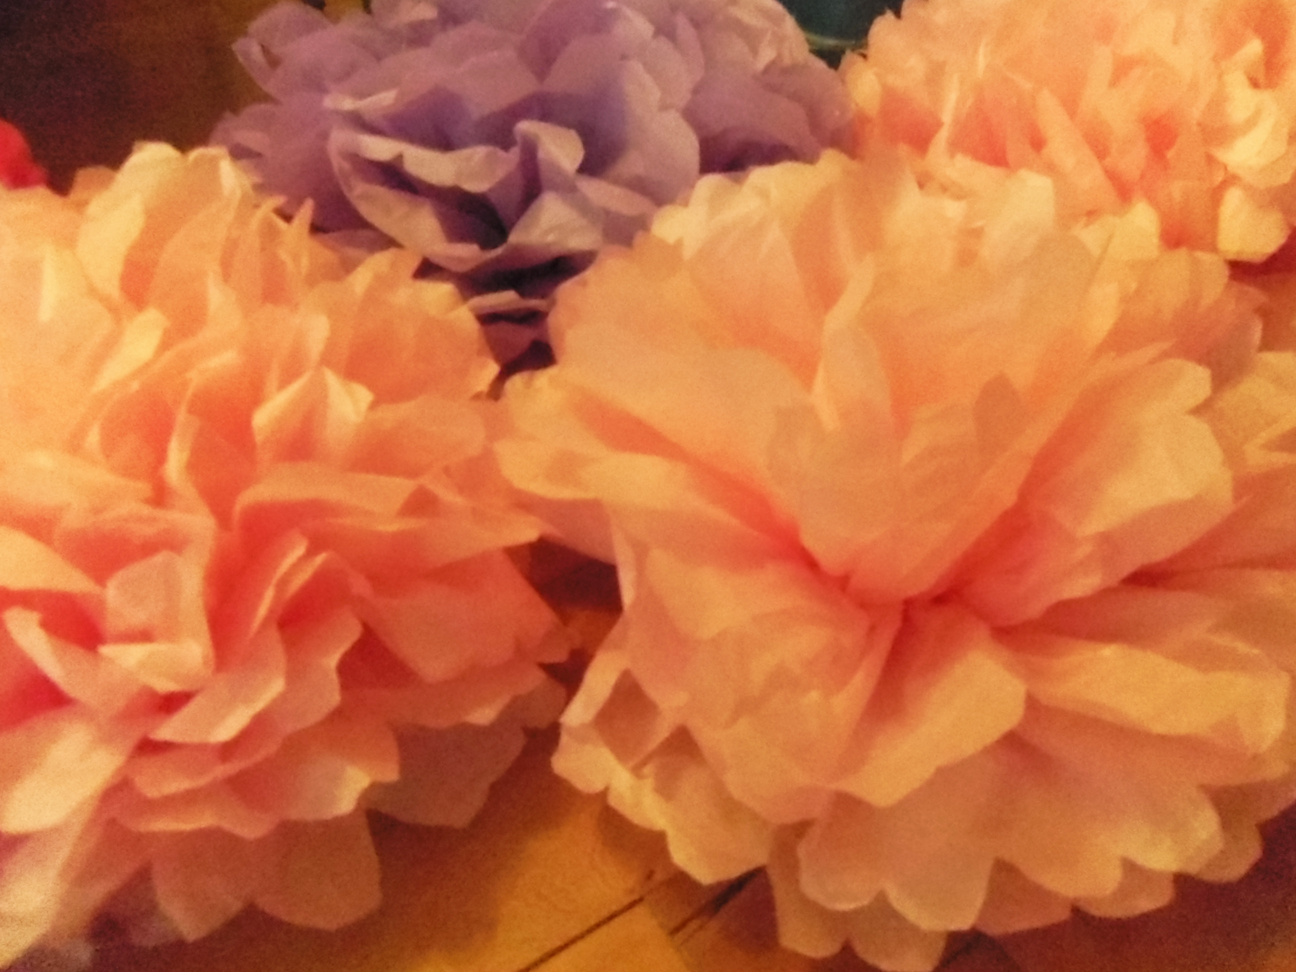 Diy Tissue Paper Flowers Tutorial Gloomth The Cult Of Melancholy